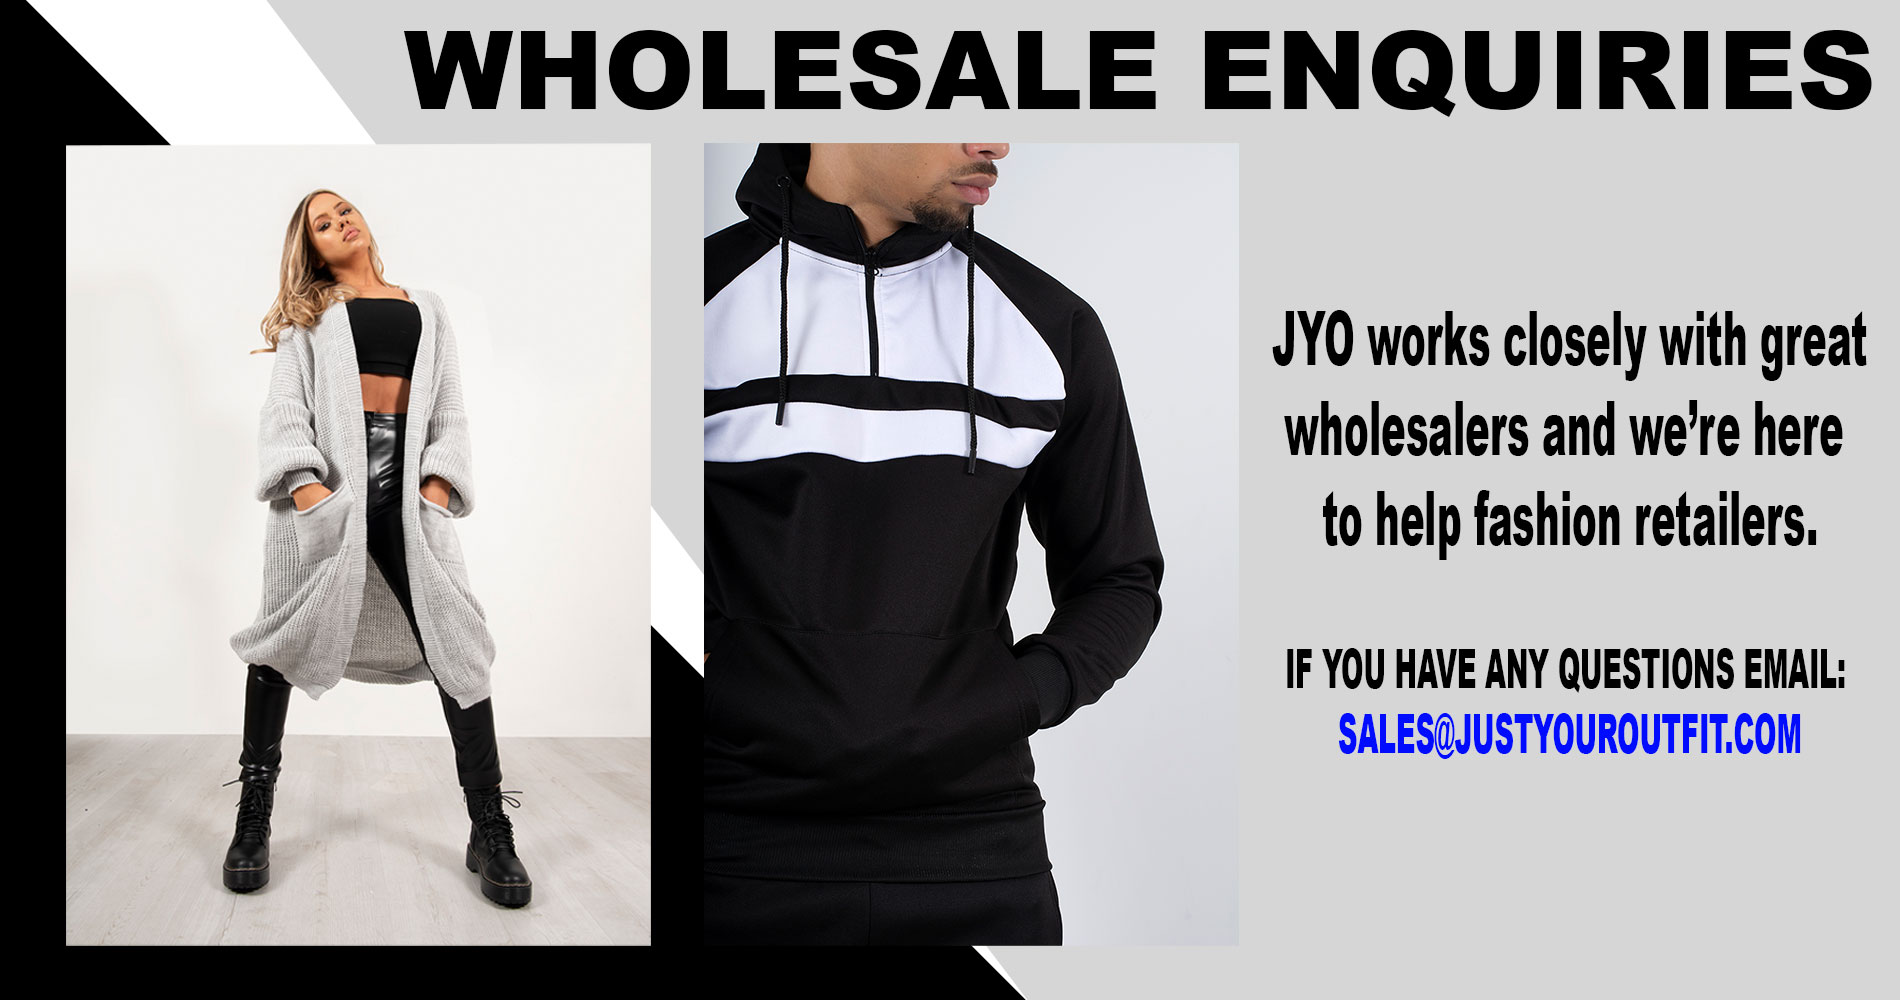 JYO-Wholesale-Enquiries-Banner.jpg